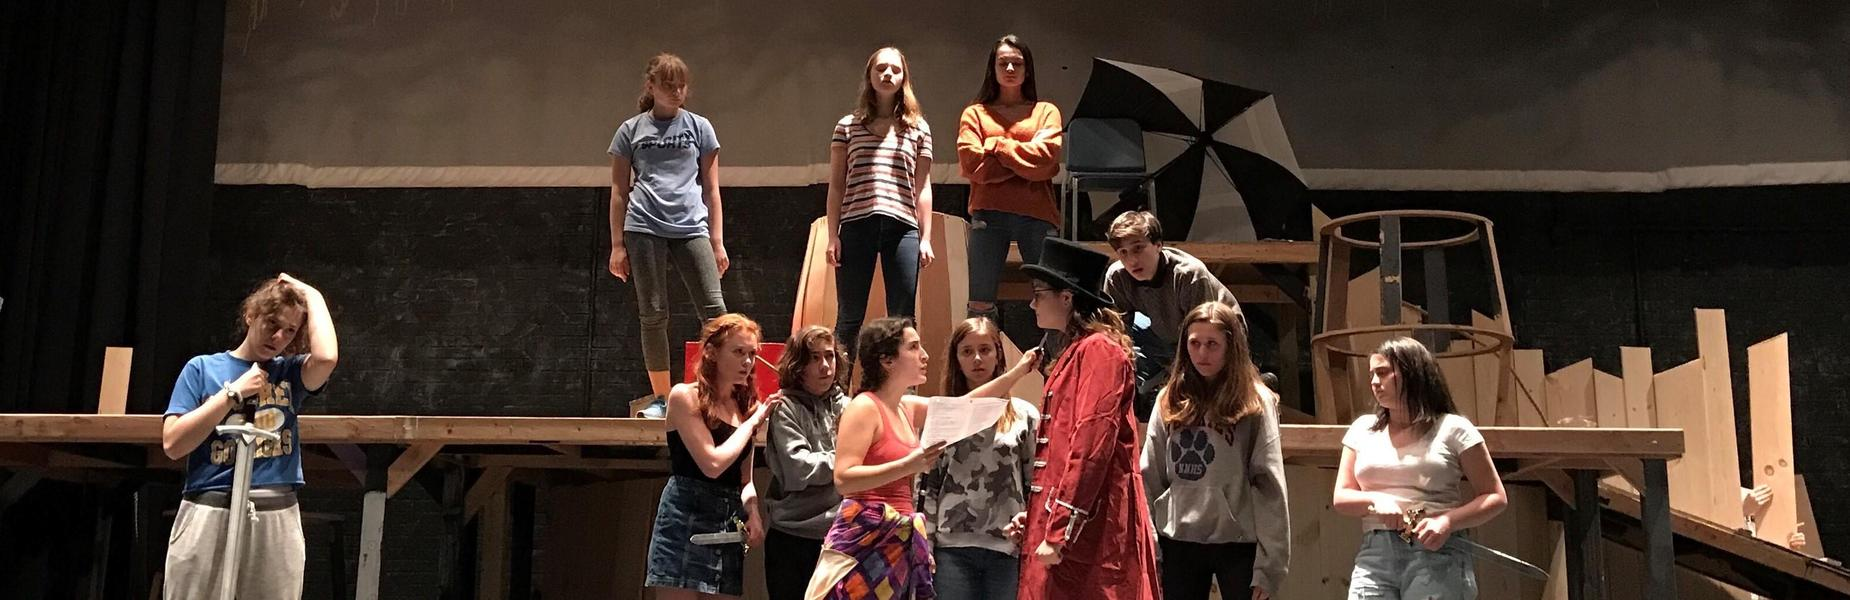 WHS Cast of Fall Production rehearse.